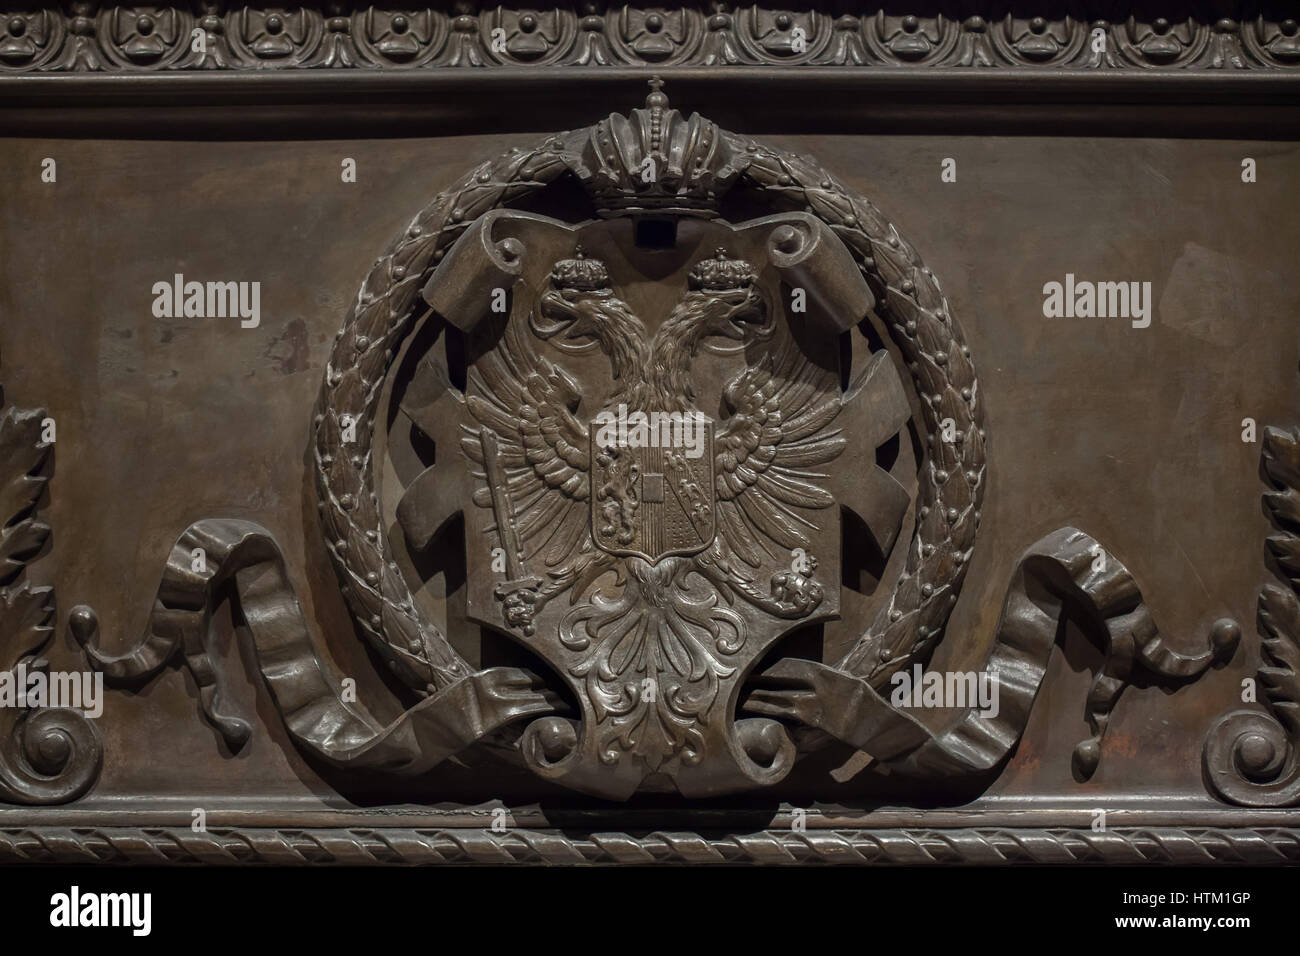 Coat of arms of Austria depicted on the sarcophagus of the Emperor Ferdinand I of Austria (1793 - 1875) in the Kaisergruft - Stock Image